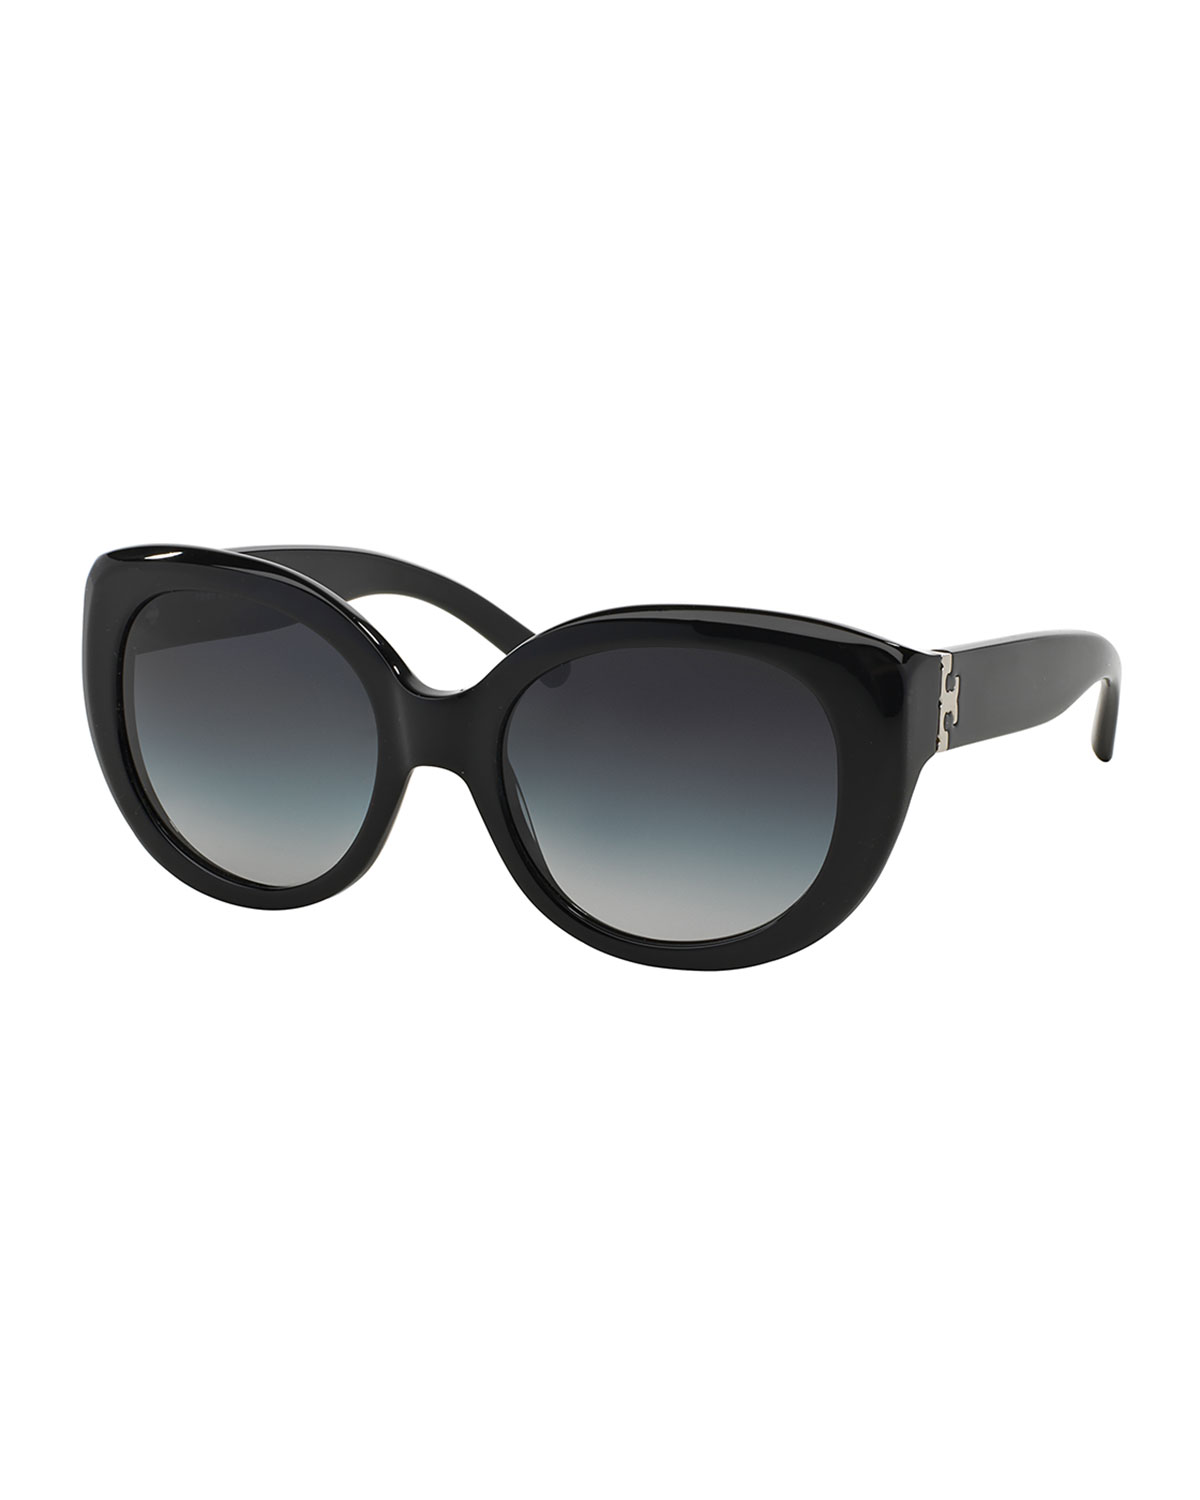 Tory Burch Plastic Cat-Eye Sunglasses, Black